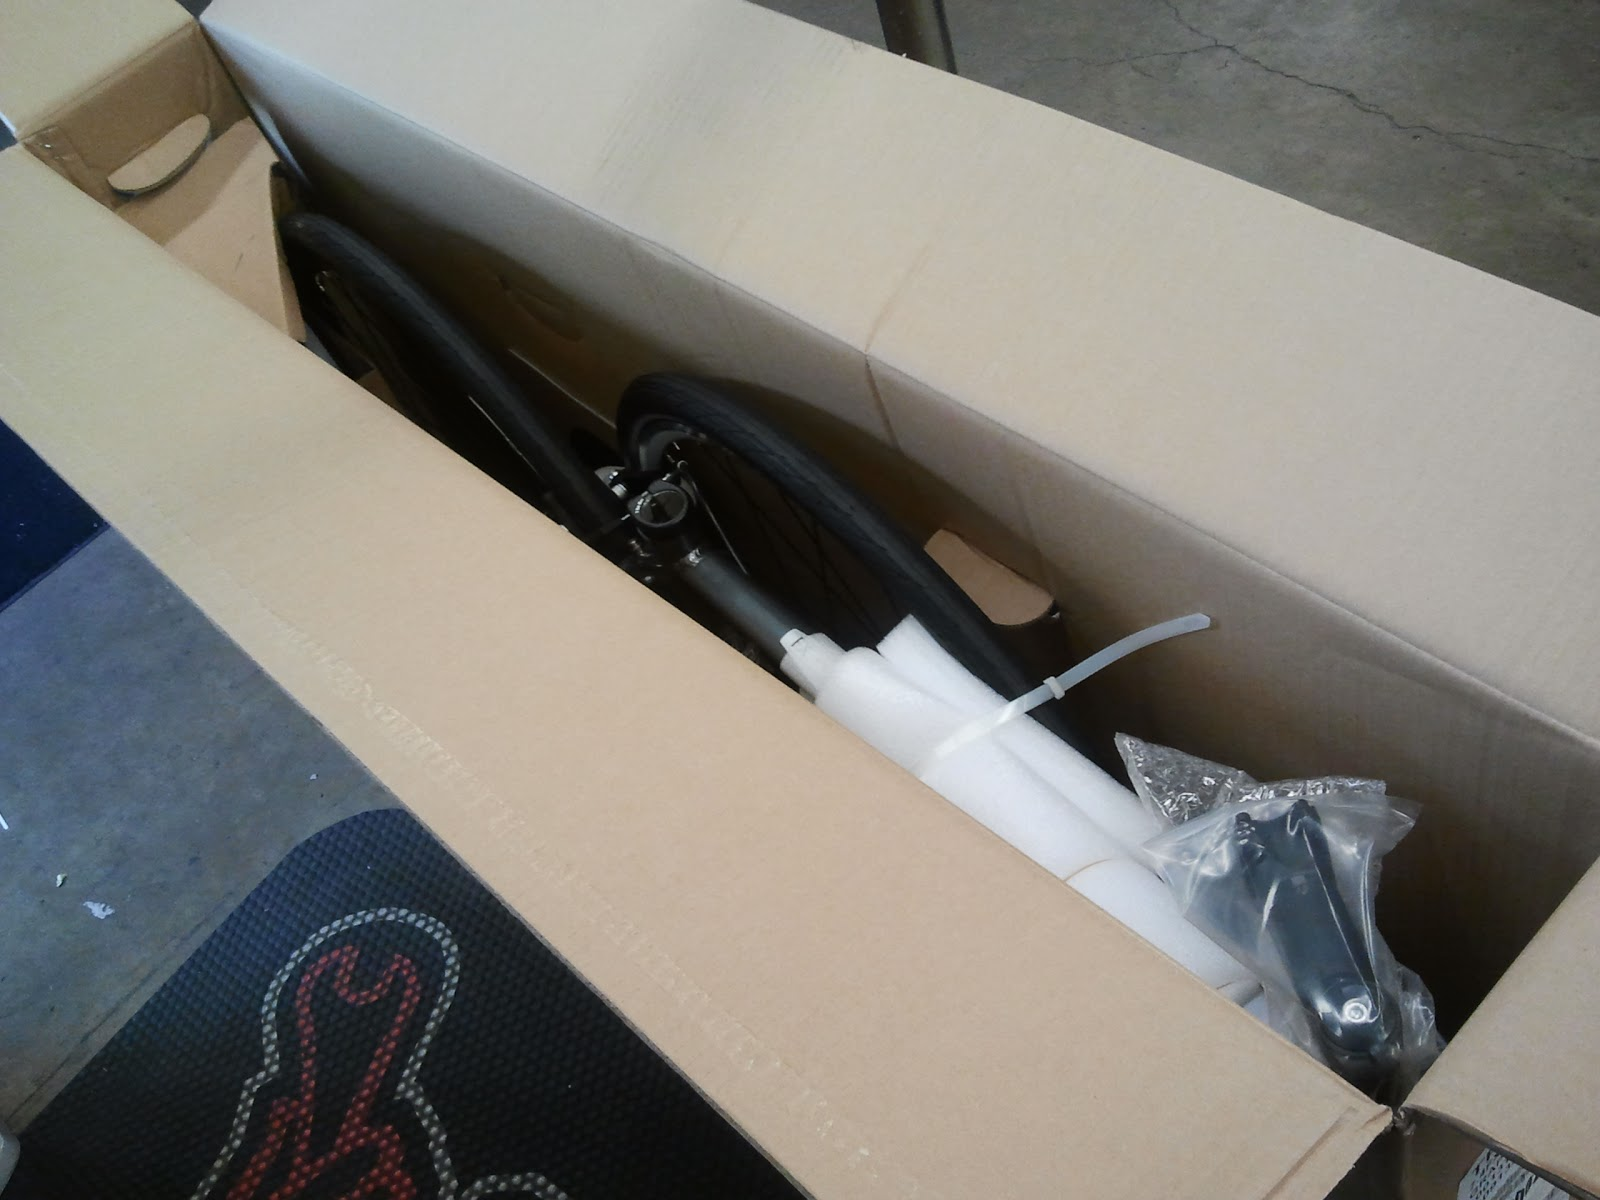 Bike Parts Unboxing Next open the bike box and